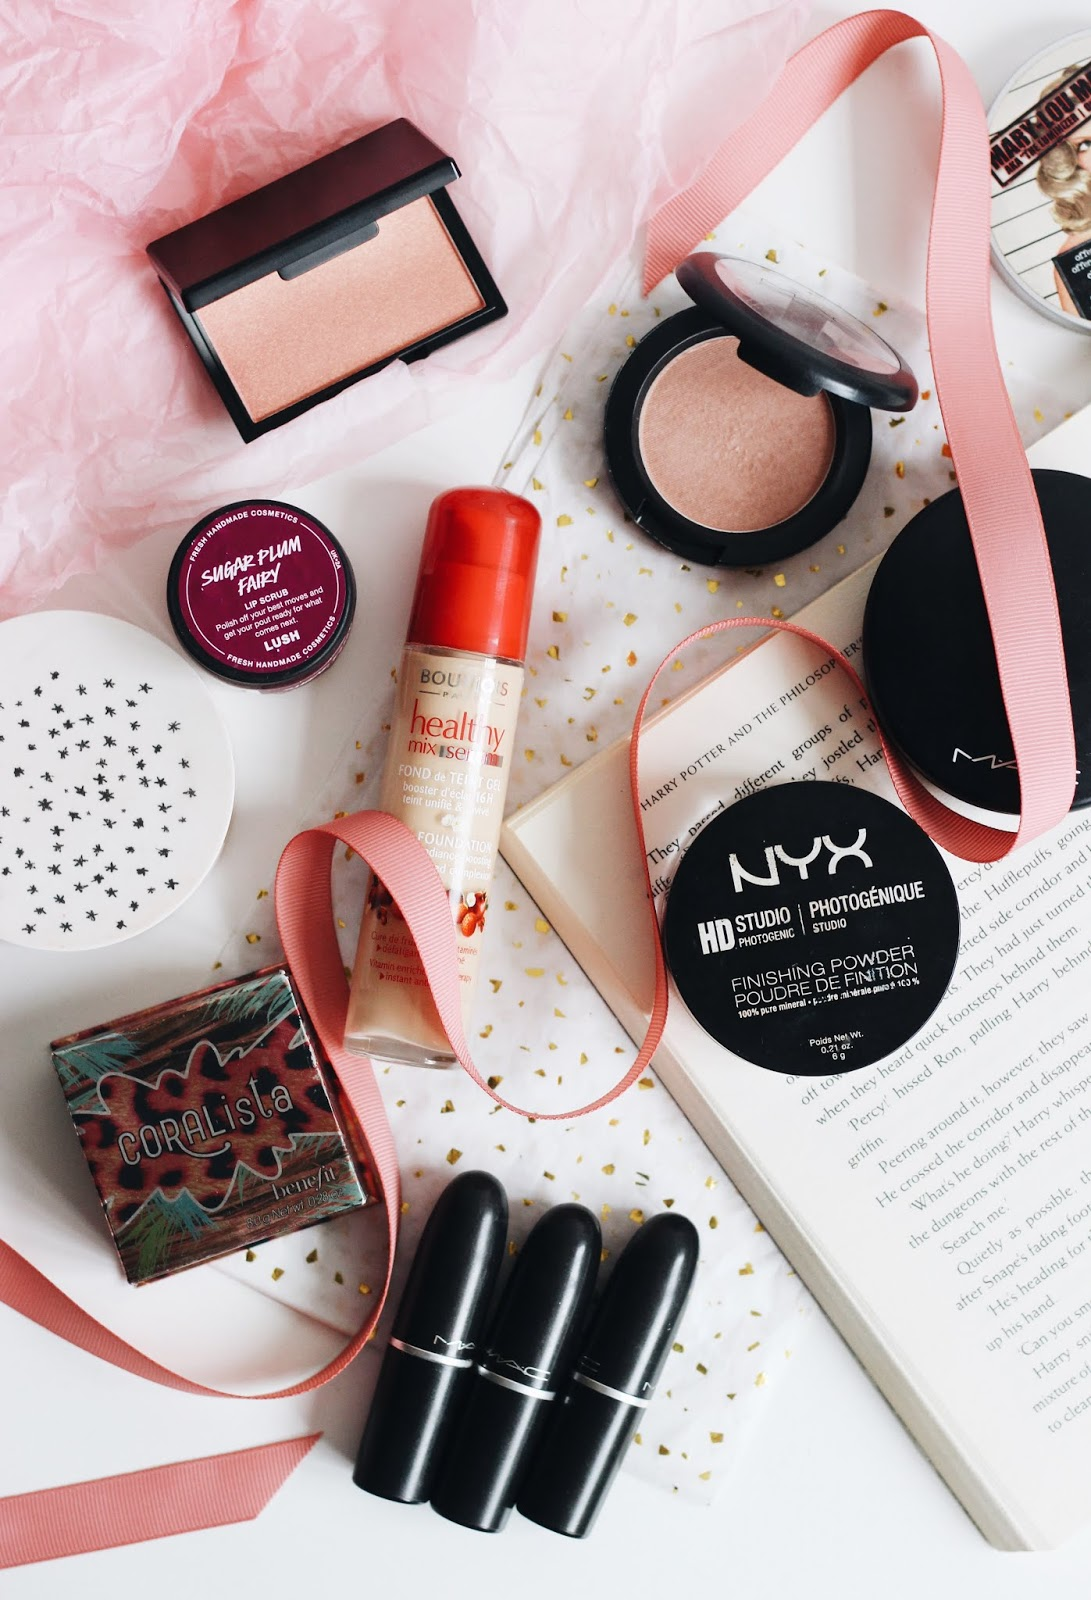 2010's Nostalgic Makeup Products